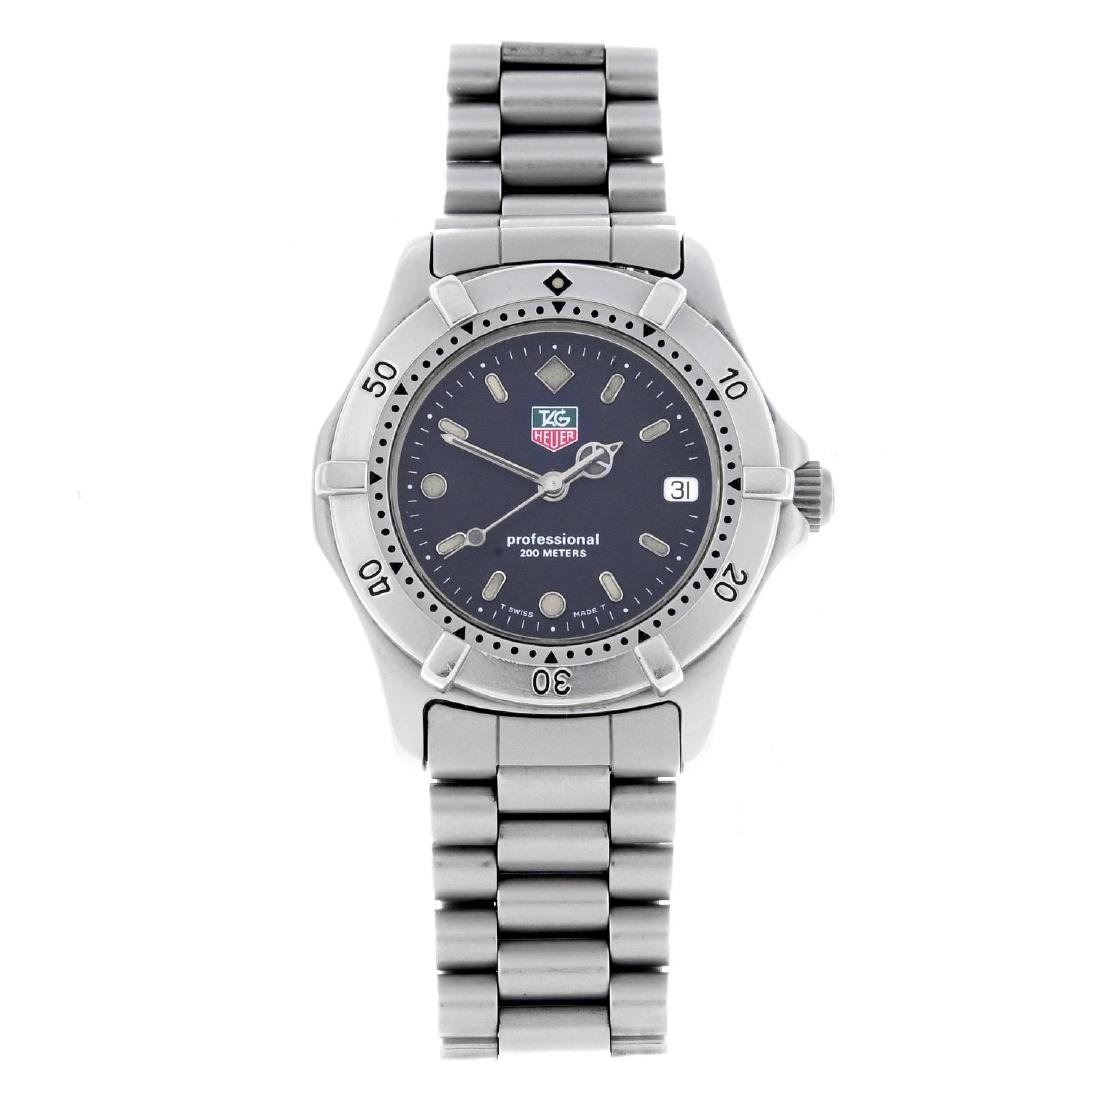 TAG HEUER - a mid-size 2000 Series bracelet watch.